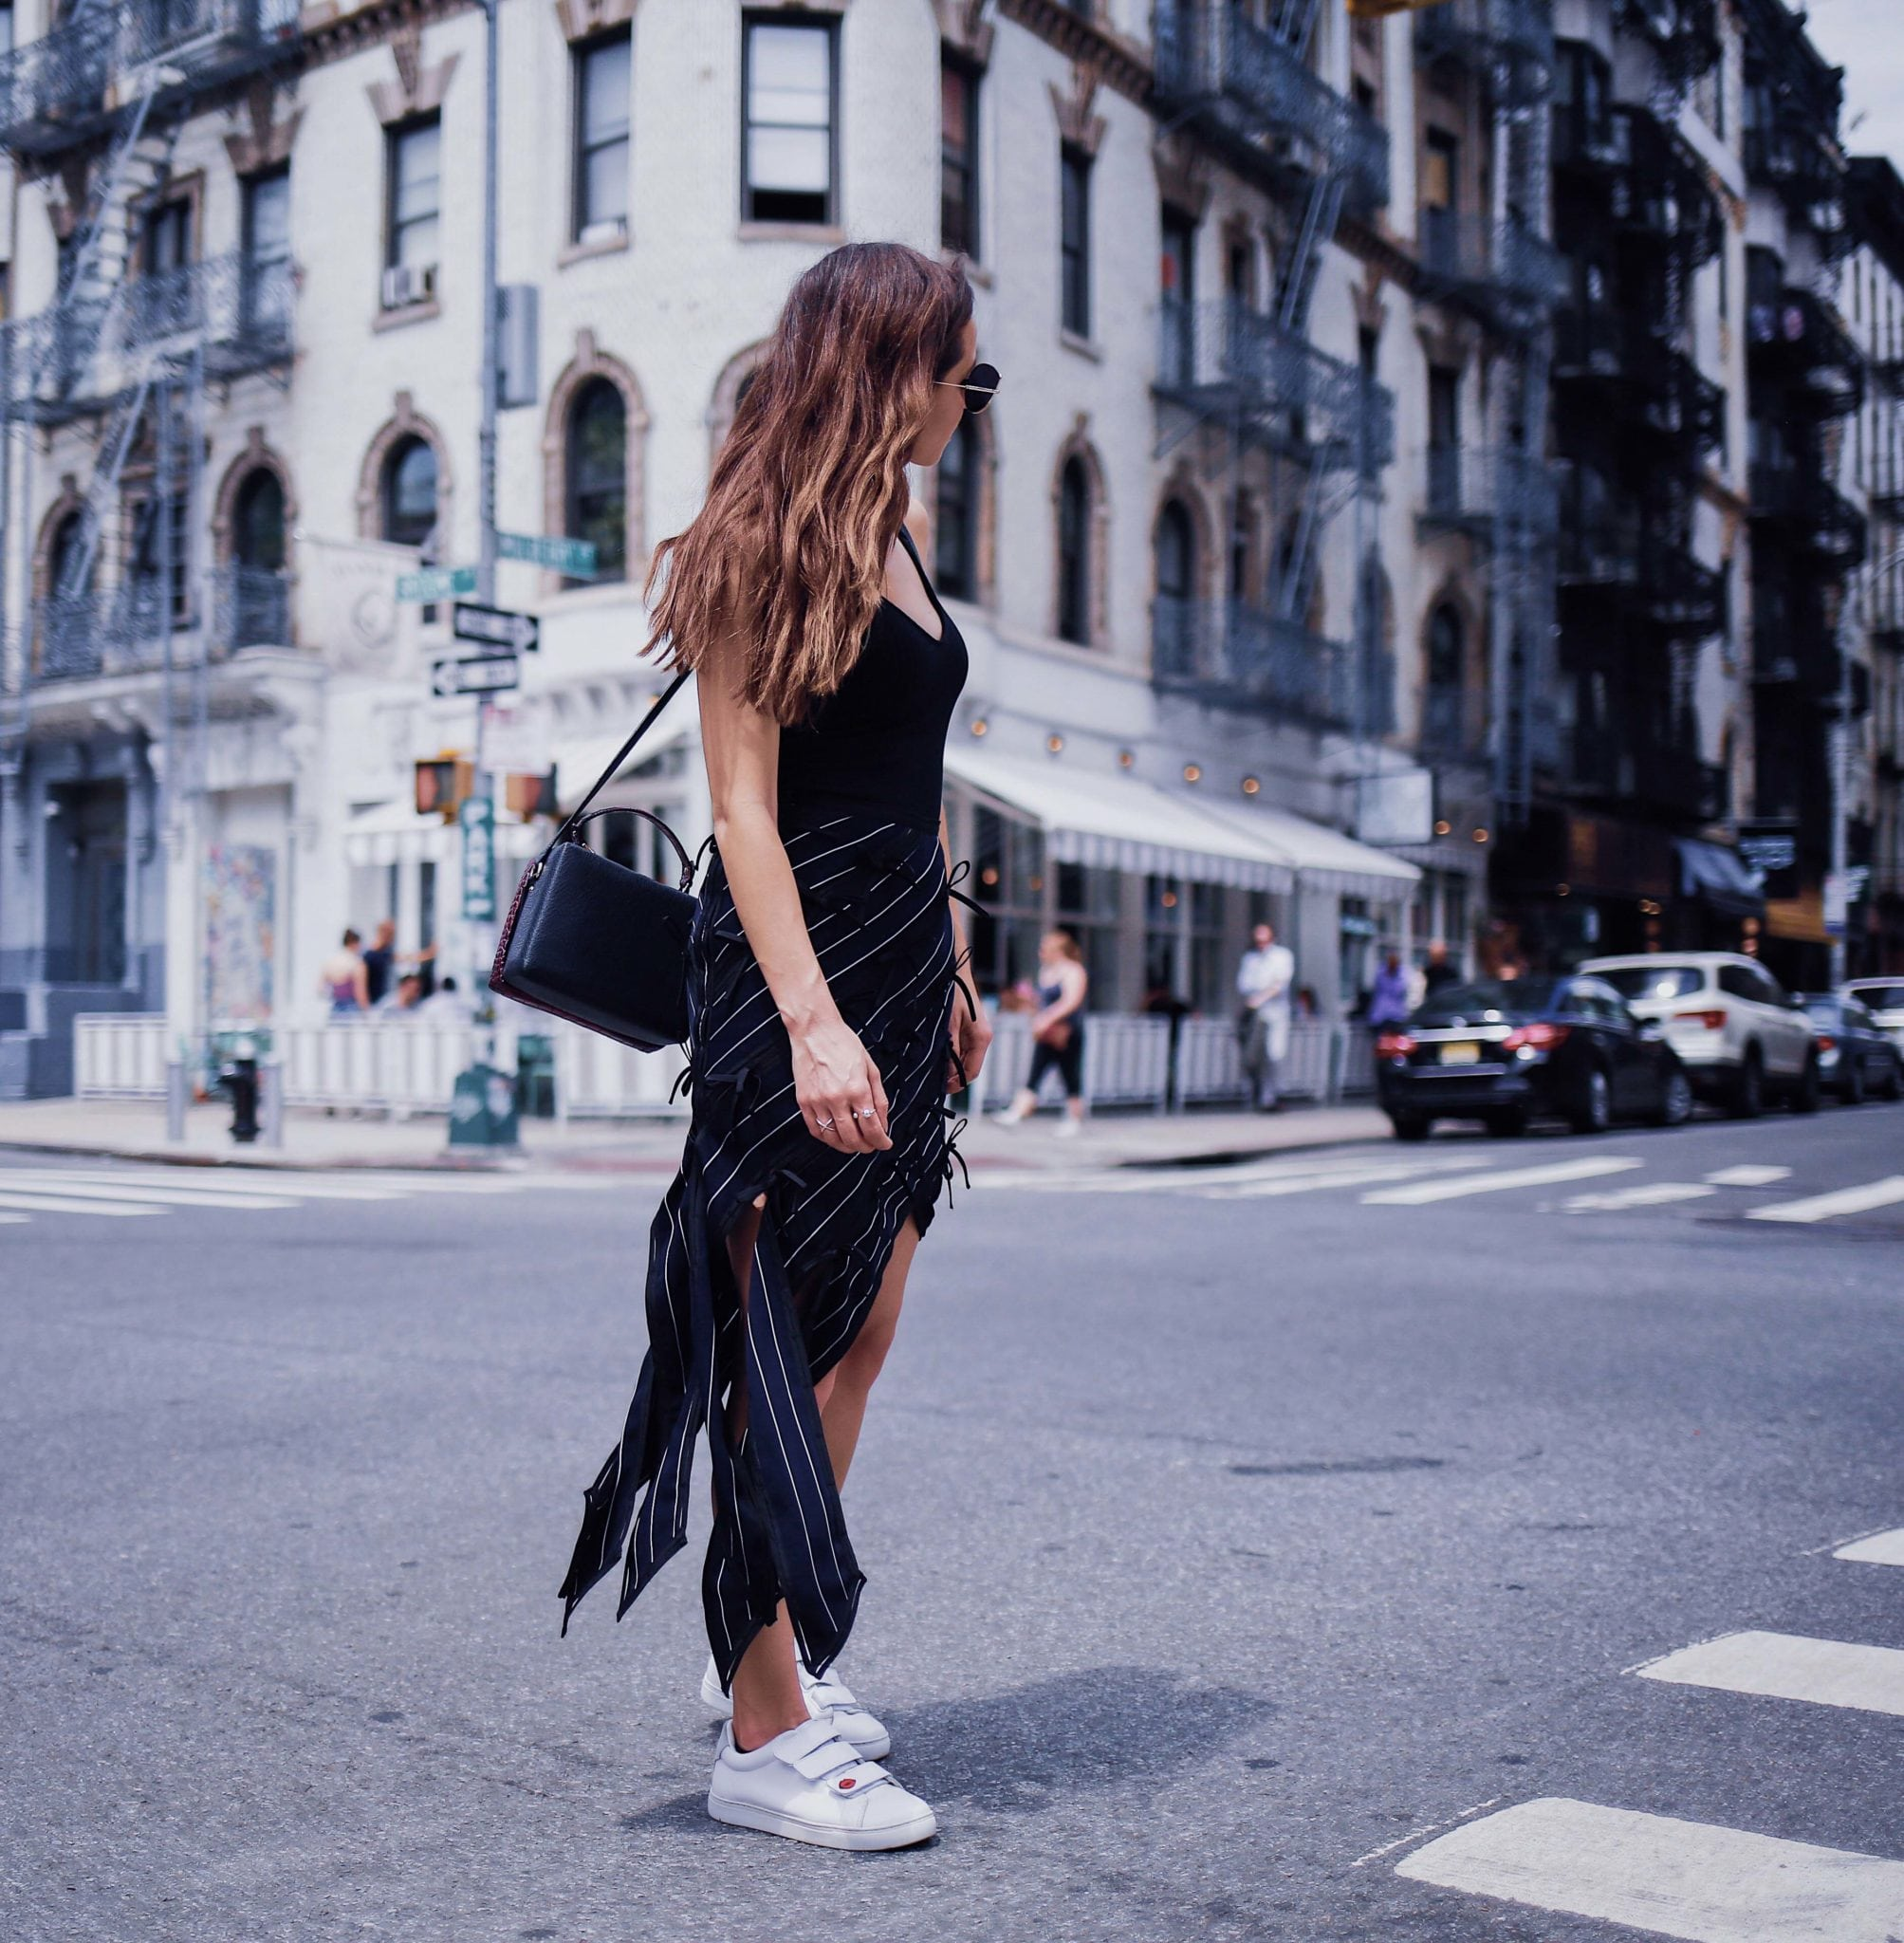 French style: the pin striped skirt by Self Portrait via If Chic. Worn by Julia Comil